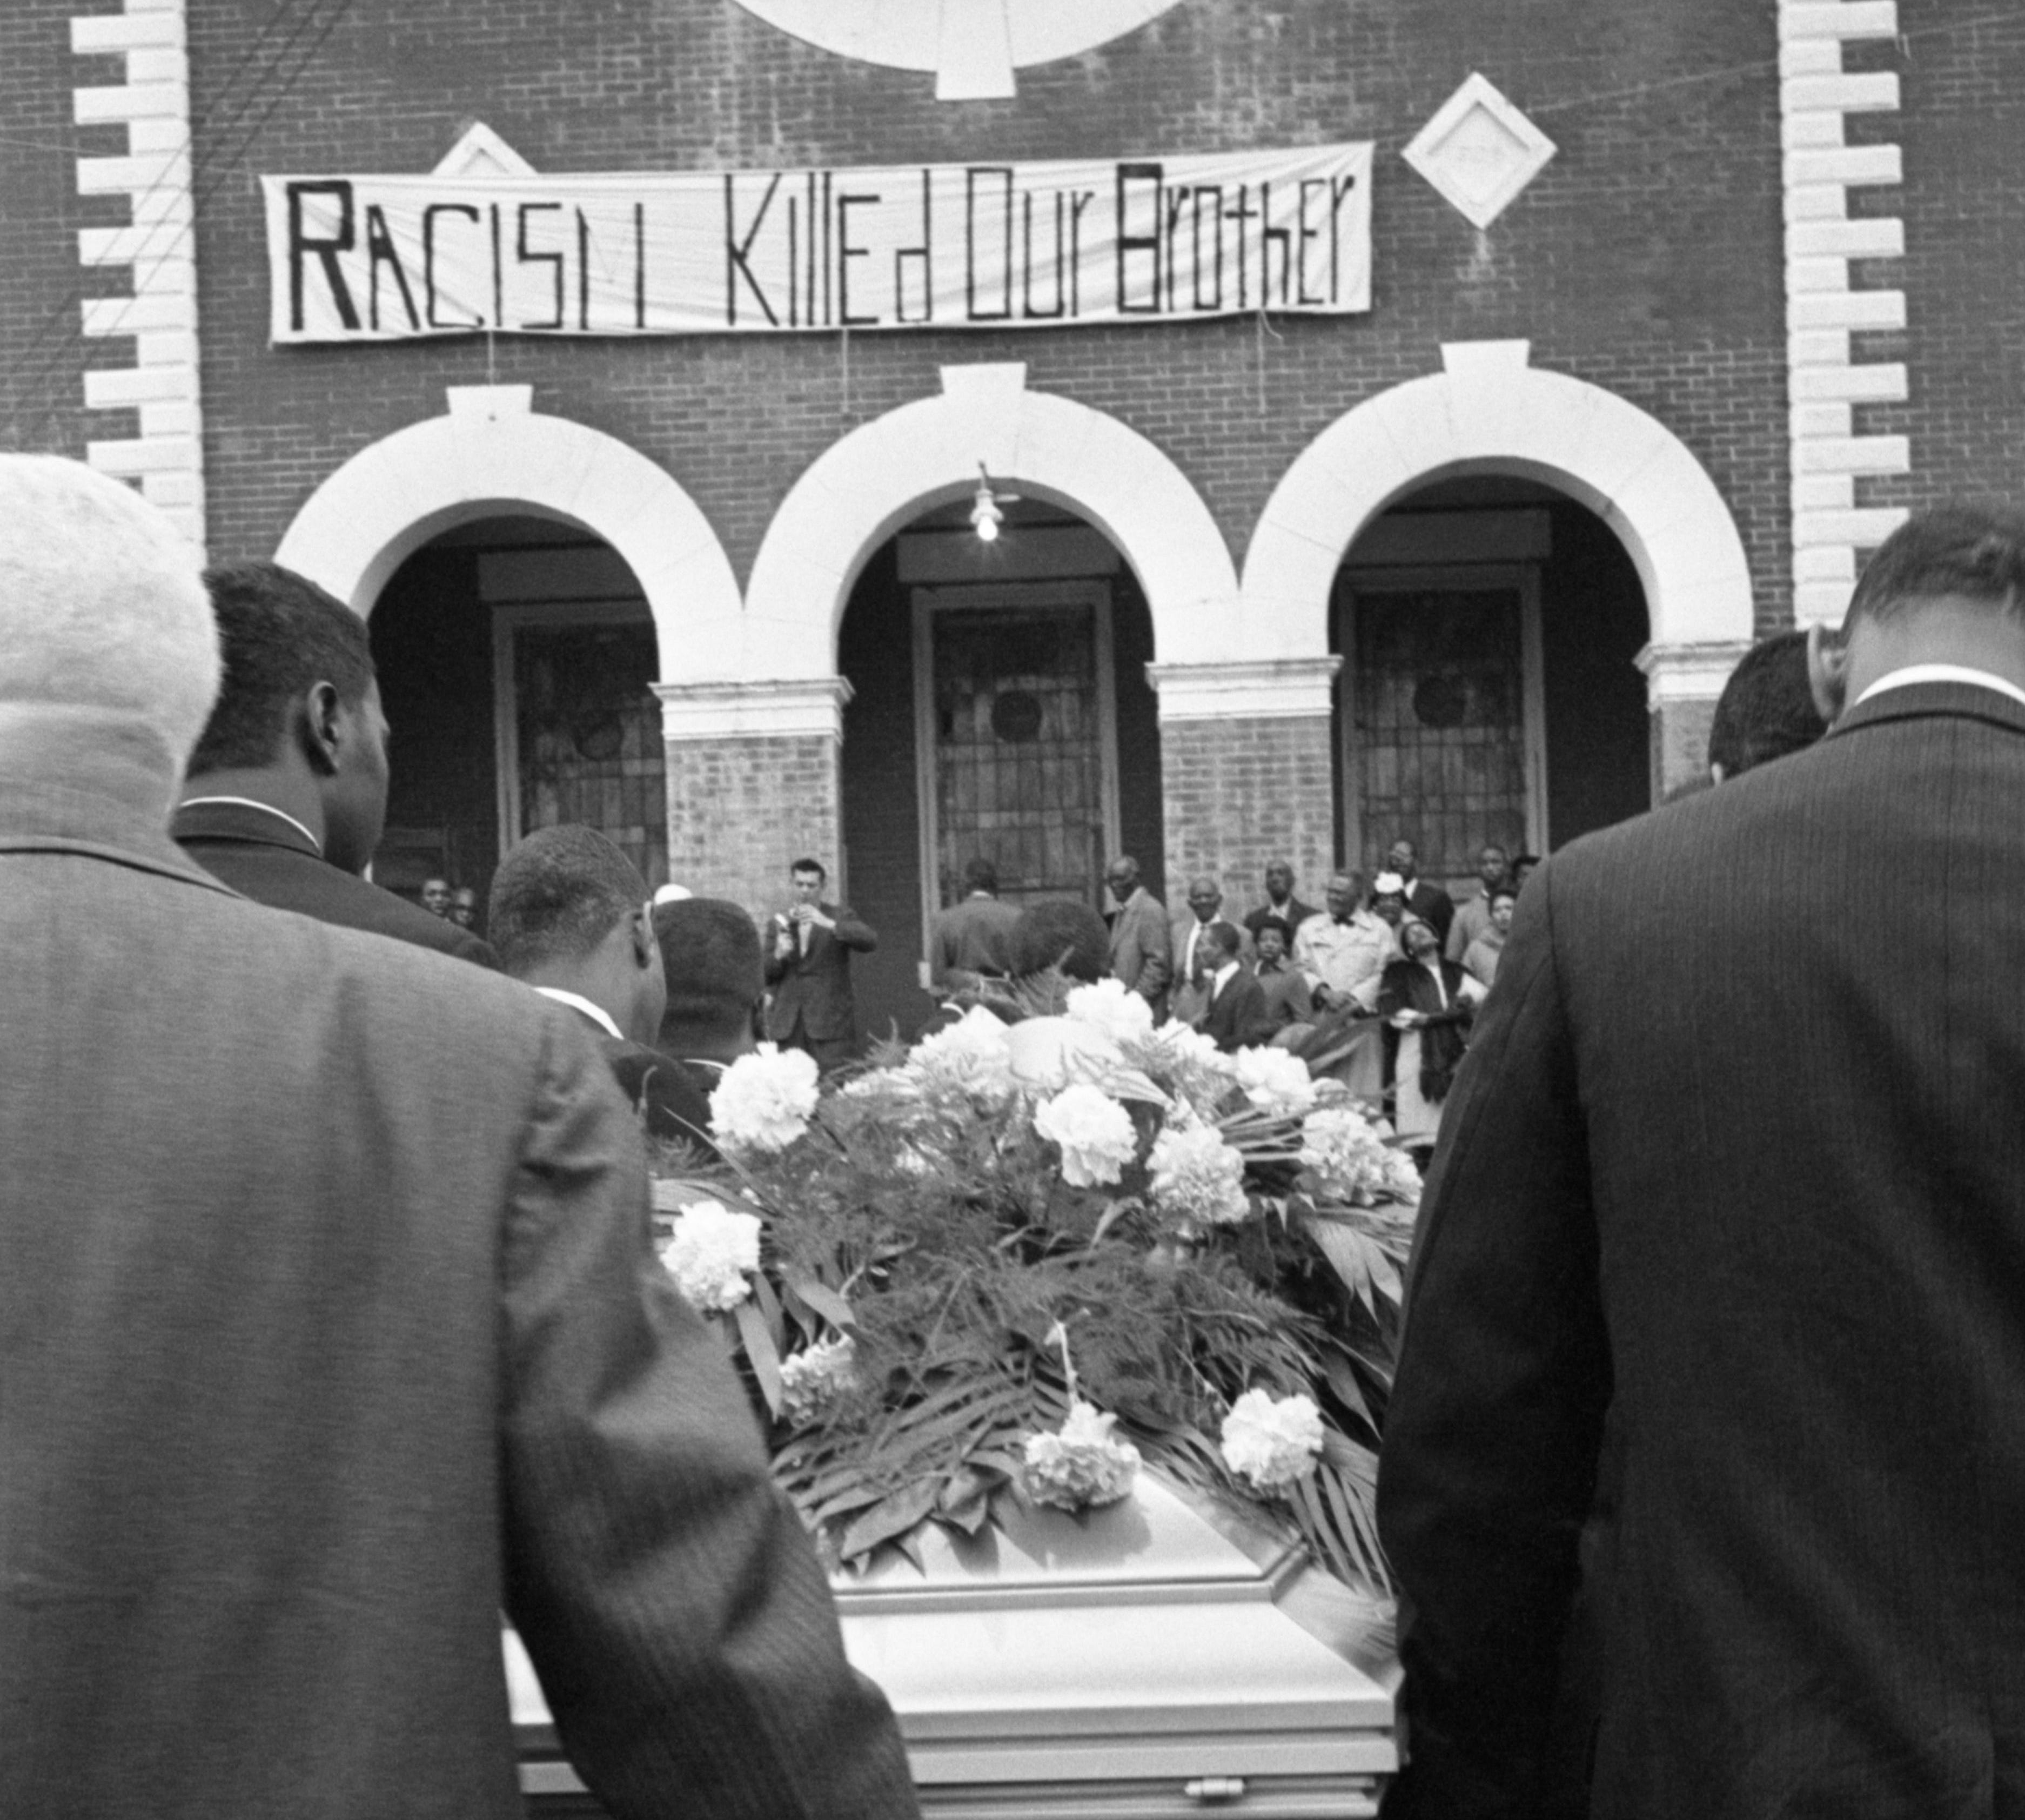 """The casket bearing the body of Jimmie Lee Jackson is carried into a church in Selma, Alabama for funeral services on March 3, 1965. A sign in front of the church reads, """"Racism Killed Our Brother."""""""